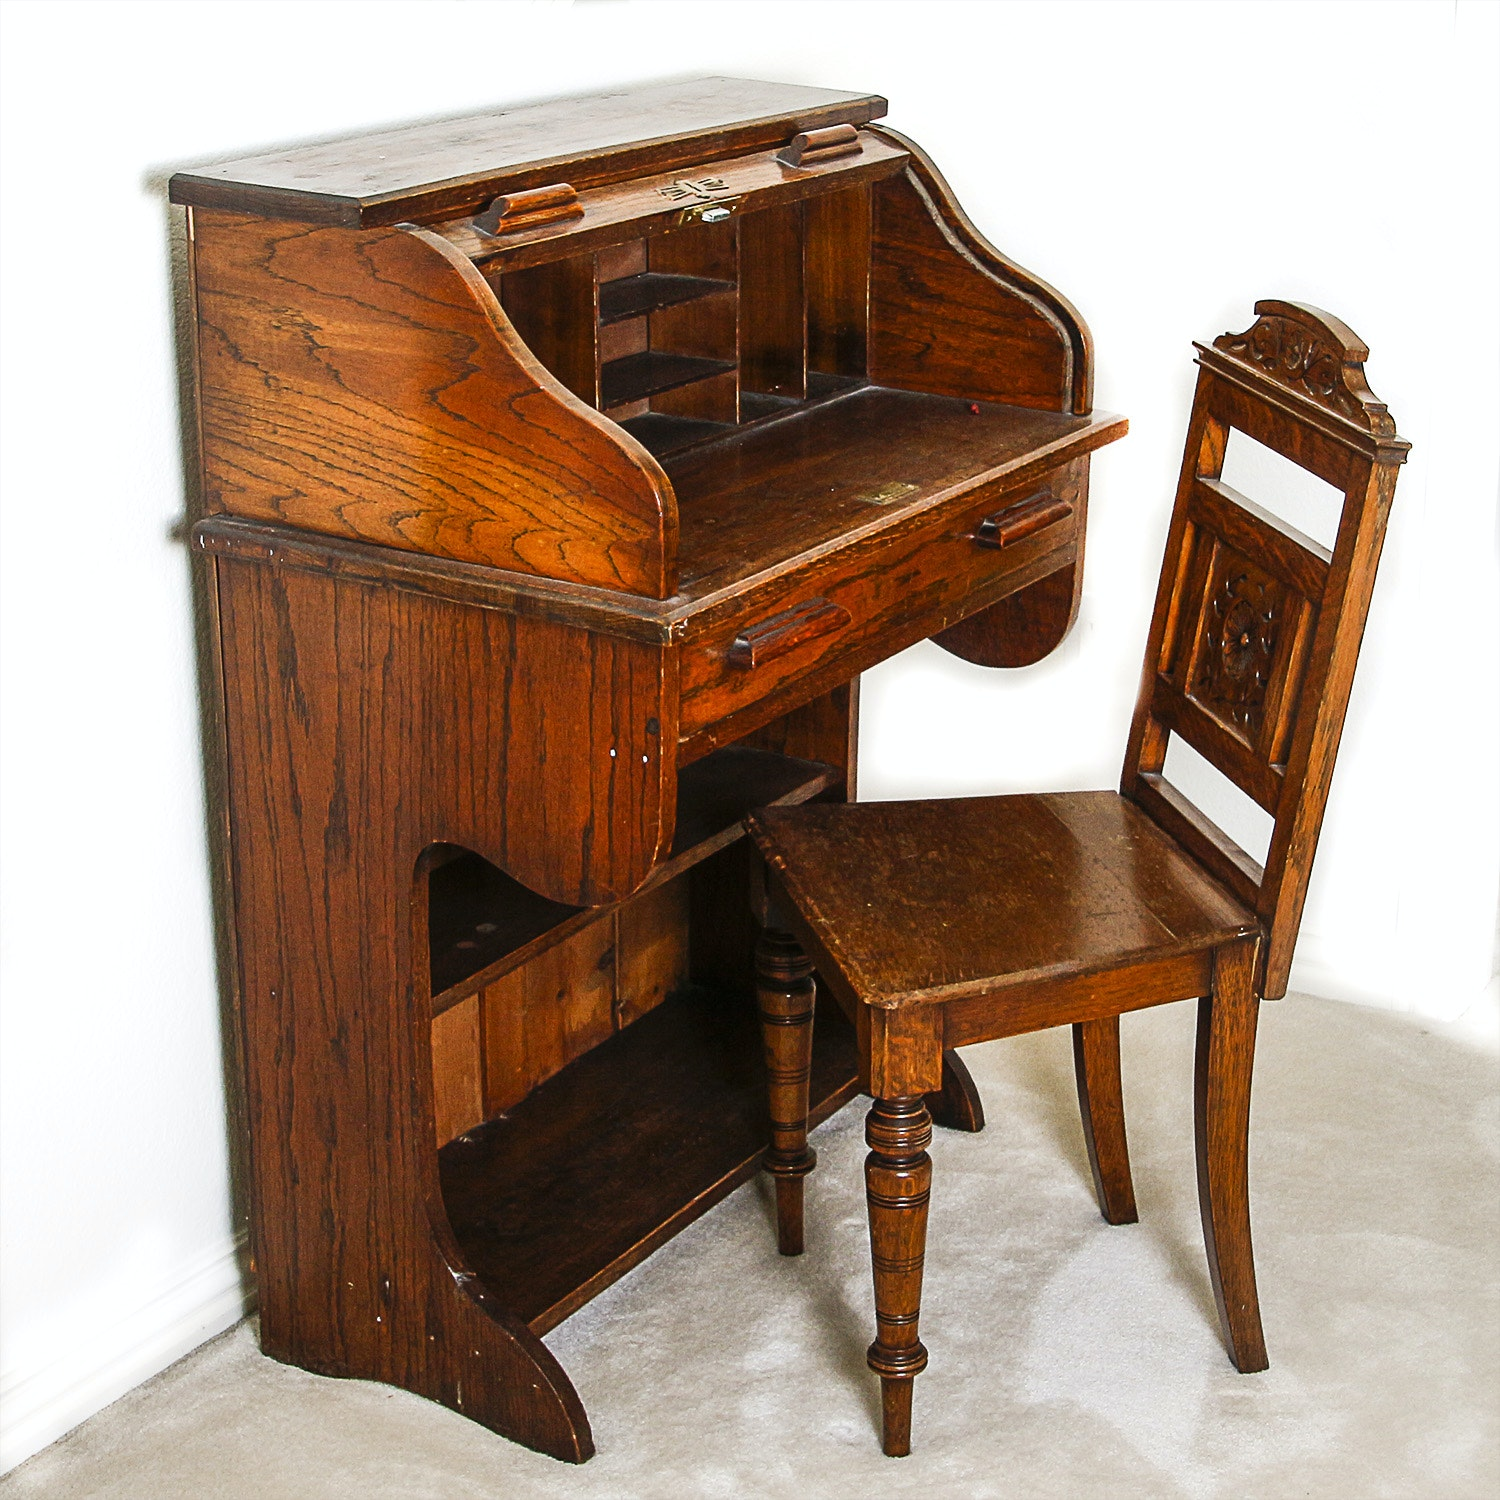 Vintage Roll Top Secretary Desk and Chair